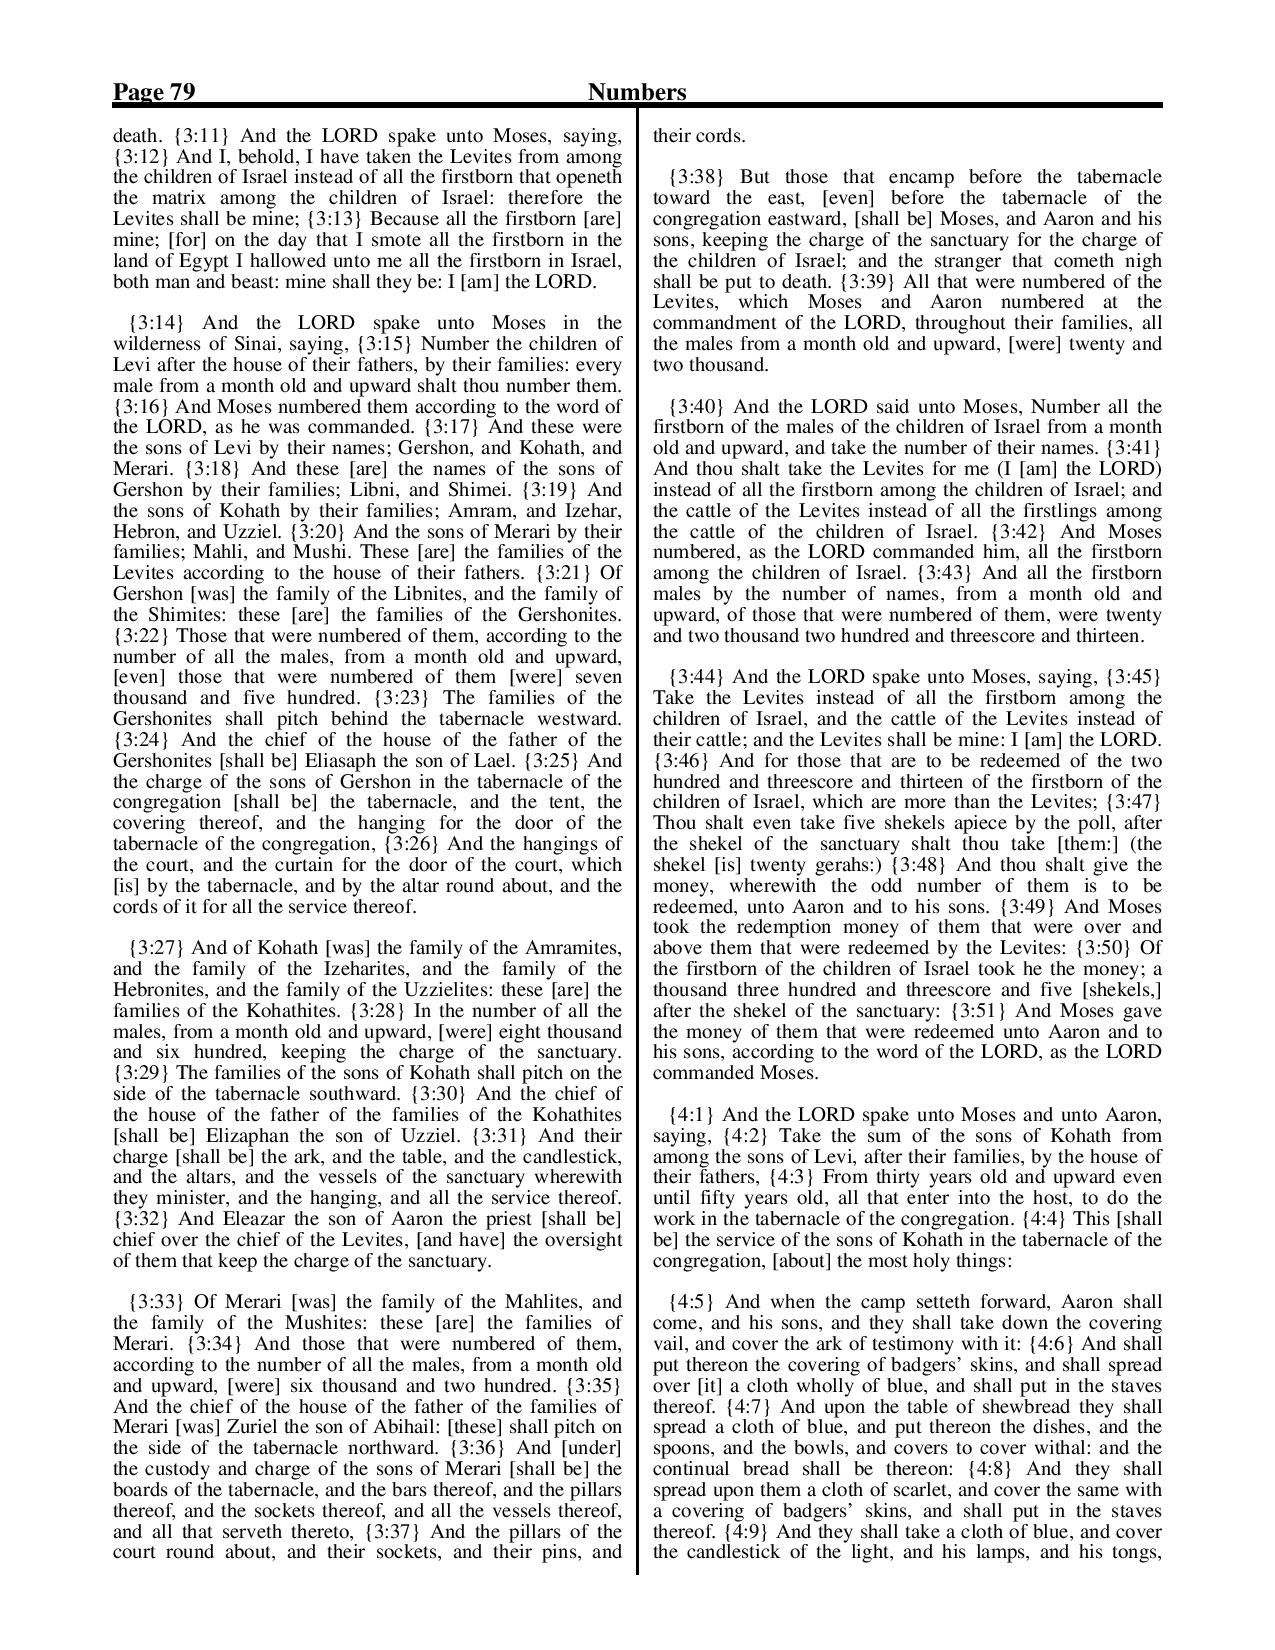 King-James-Bible-KJV-Bible-PDF-page-100